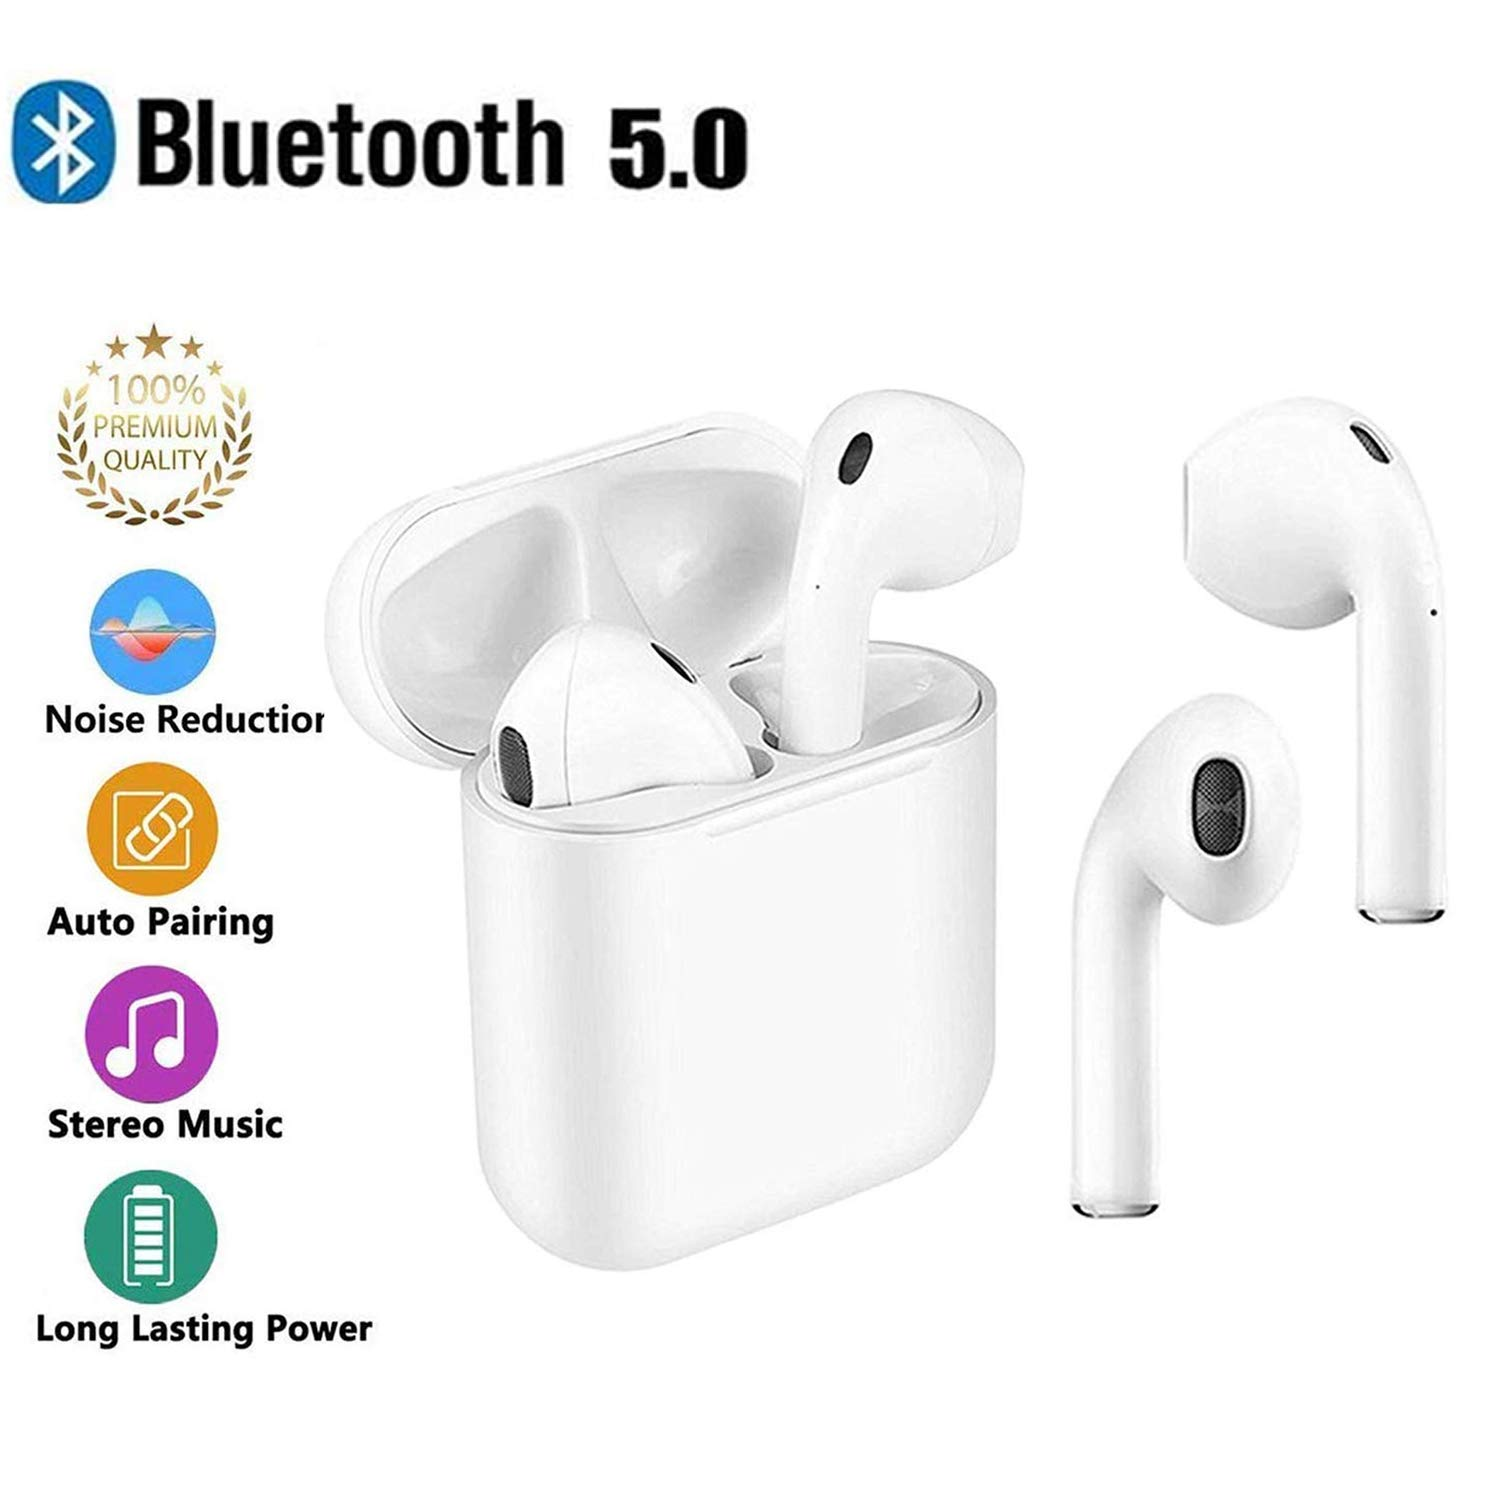 Bluetooth Wireless Headset Touch Bluetooth 5.0 Headphones with Mic Handsfree Sweatproof Mini in-Ear Sports Earphones Noise Cancelling Headsets for Most Bluetooth Smartphones-White